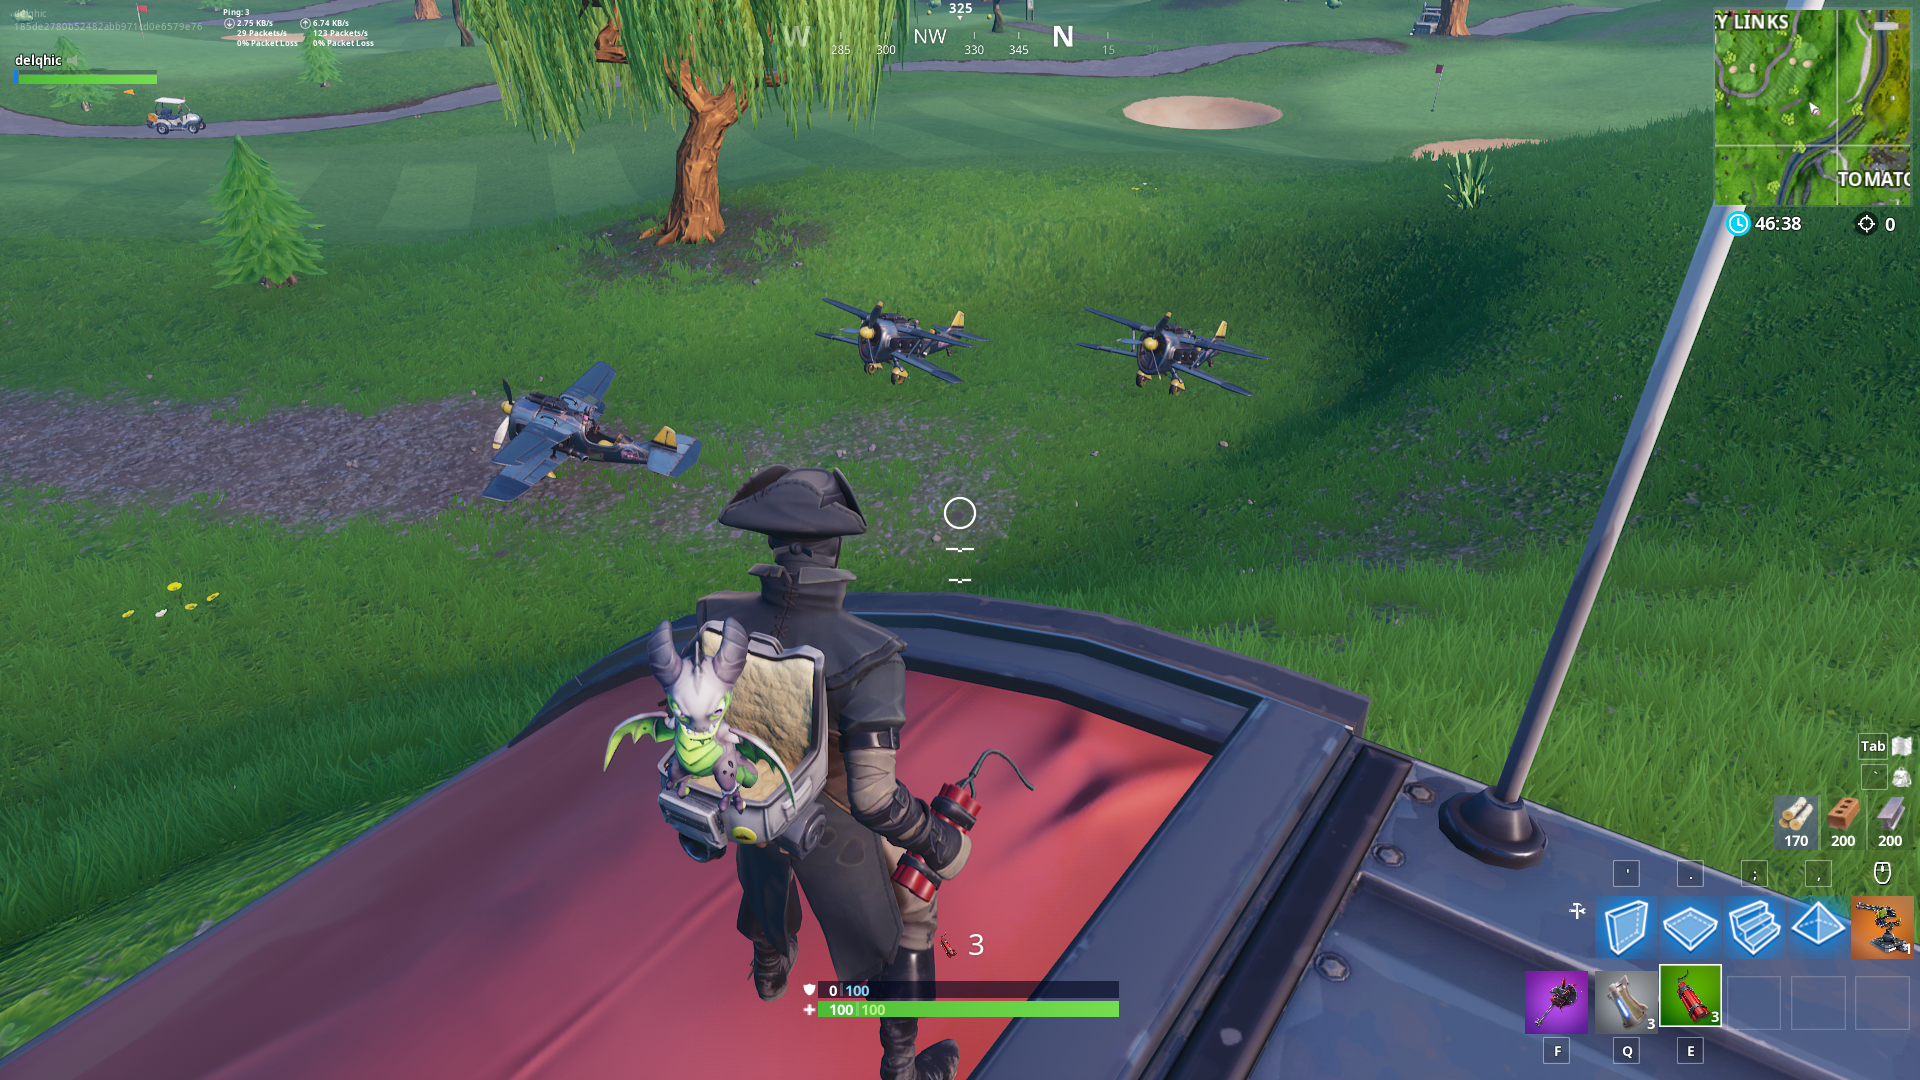 Fortnite Plane Spawn Location - South-east of Lazy Links